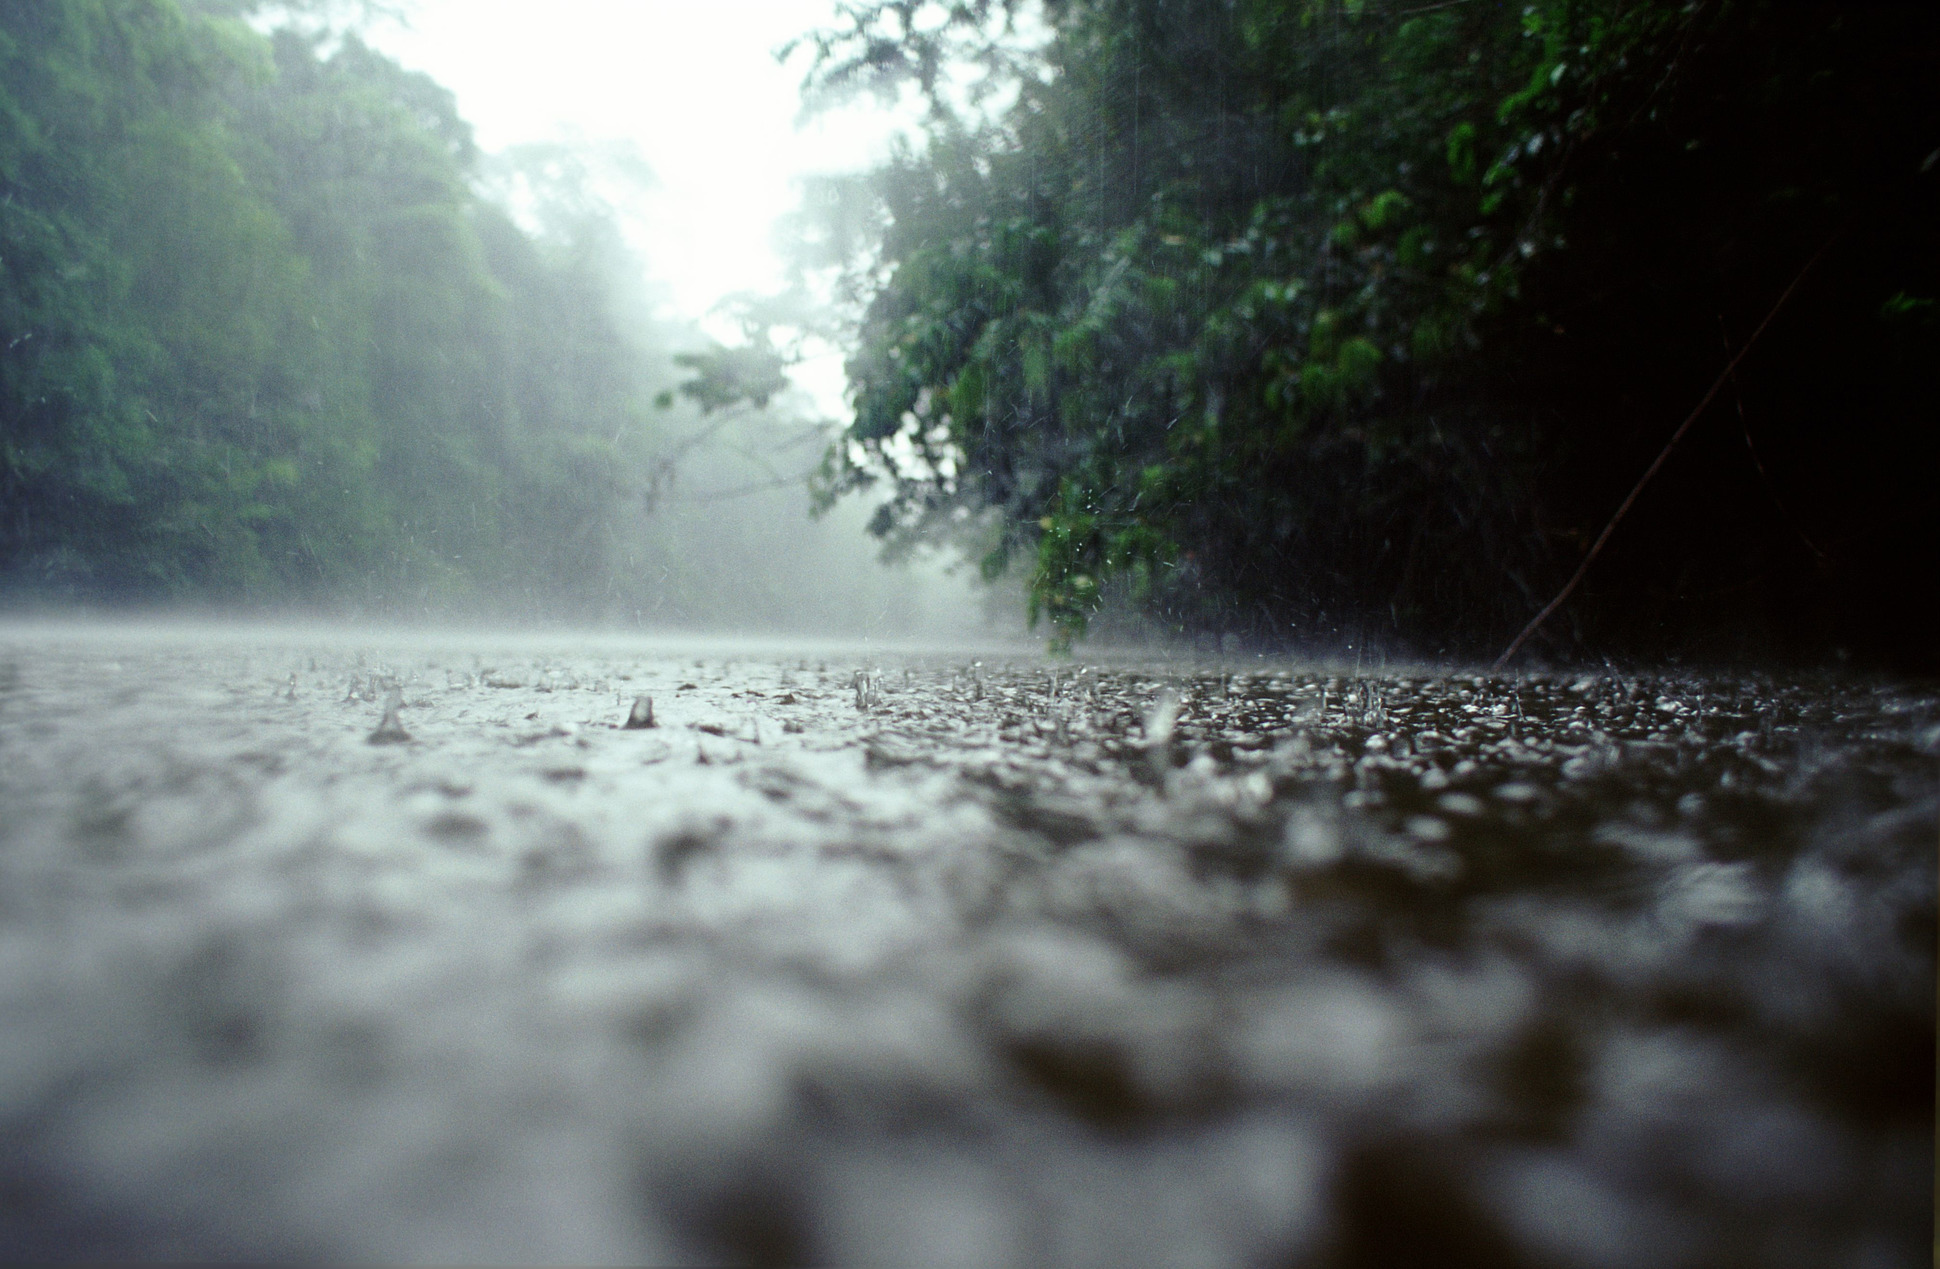 the winter weather in 2014 2015 has had an impact on the garden pond